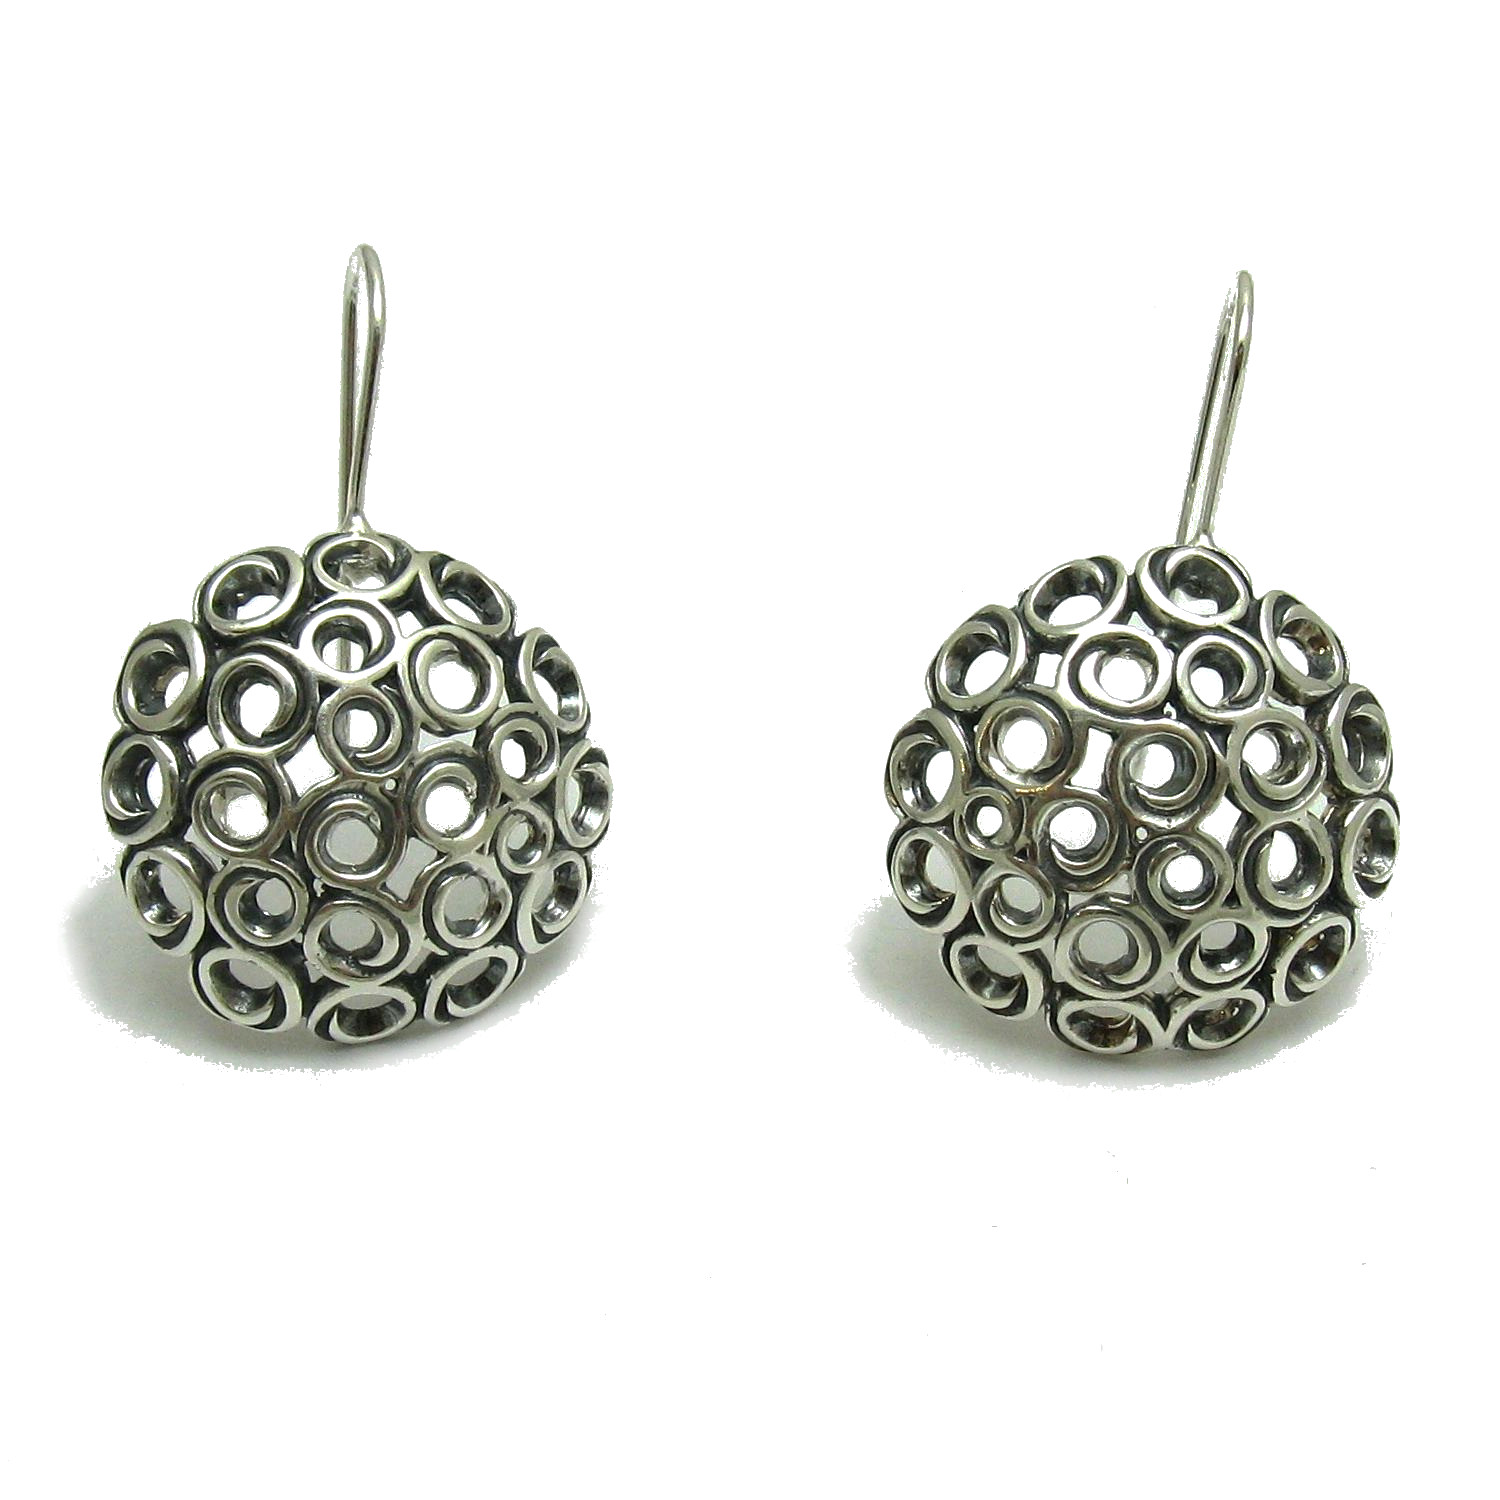 Silver earrings - E000712